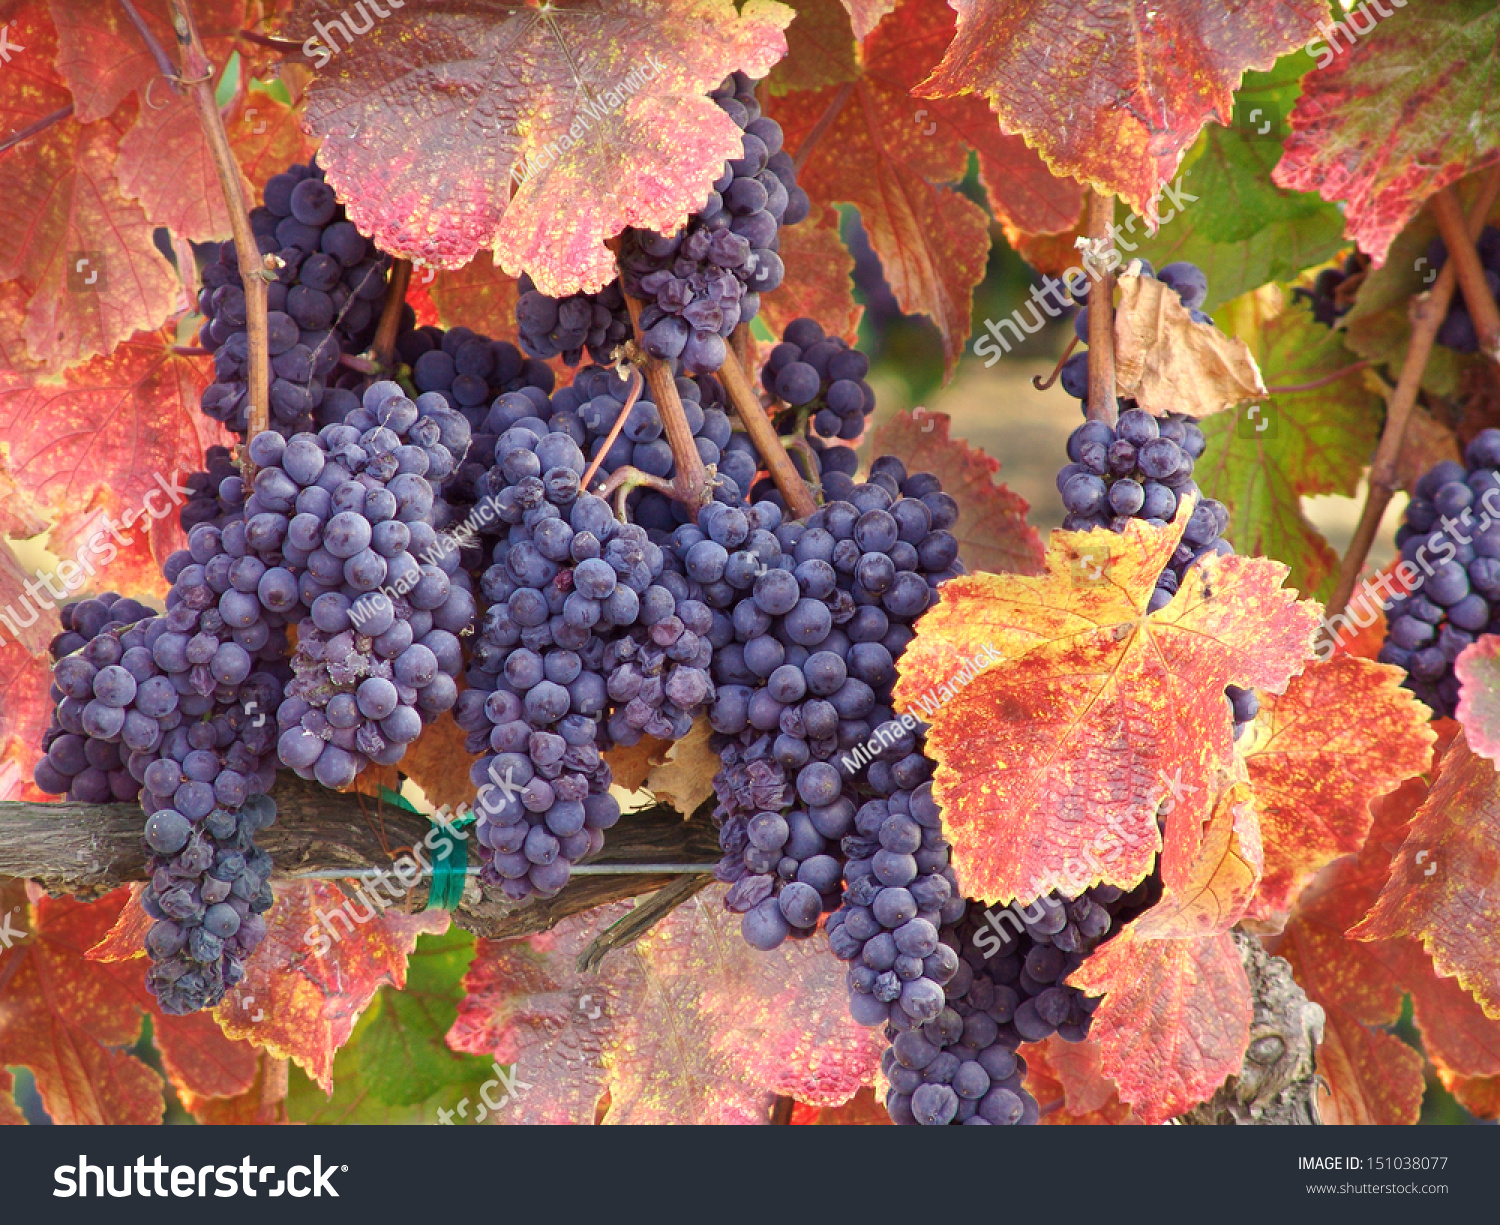 In Autumn, Harvest: Cluster Must in Images